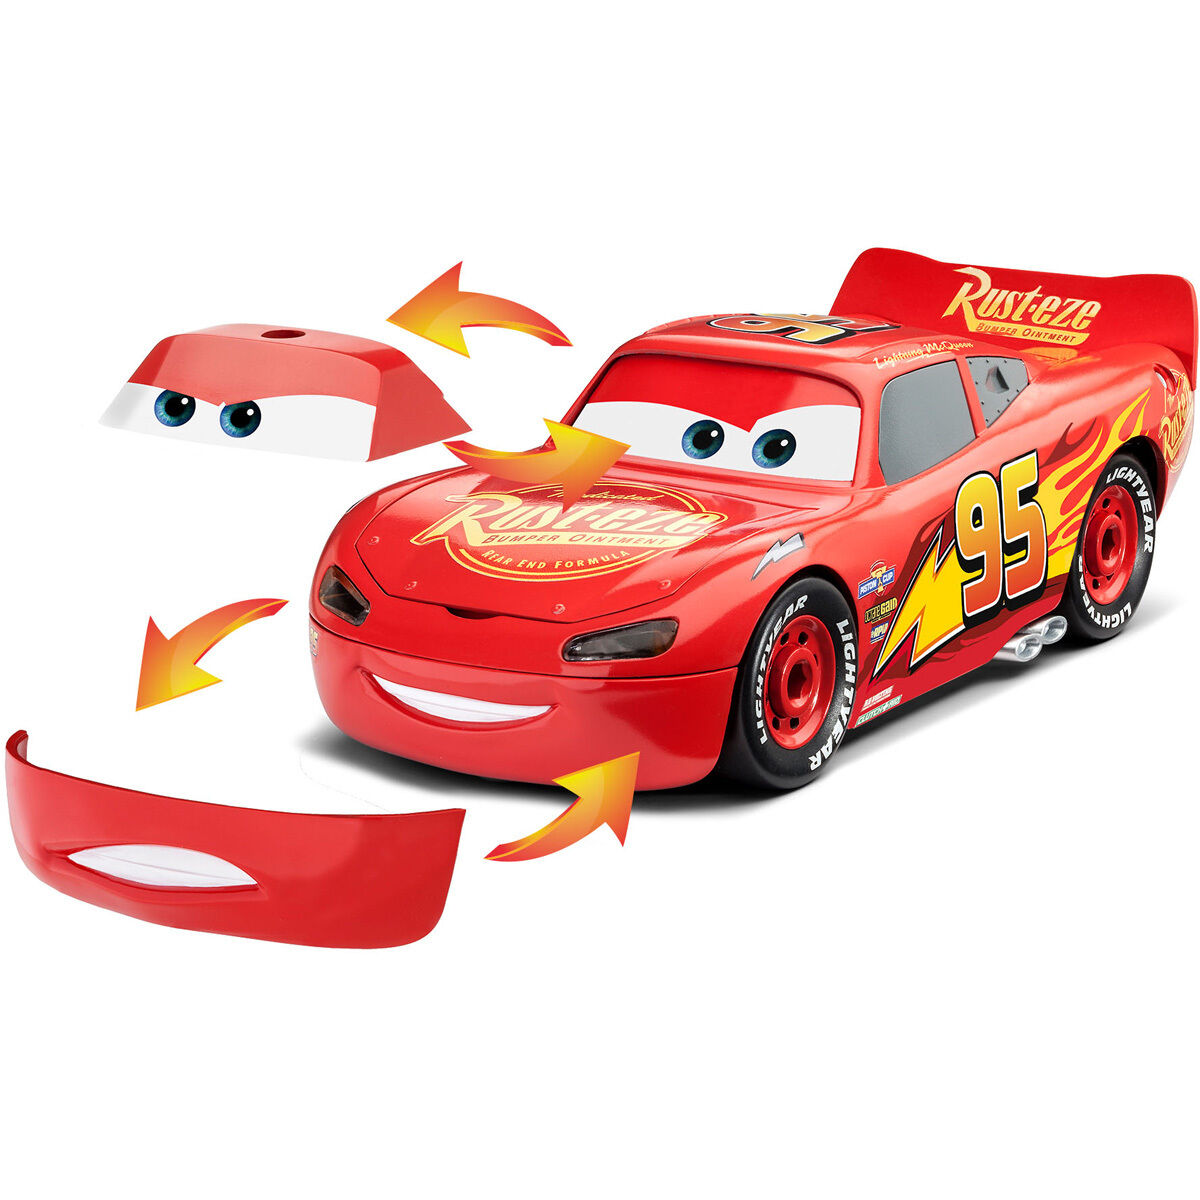 Revell Junior Kit Cars Lightning Mcqueen Karstadt Online Shop